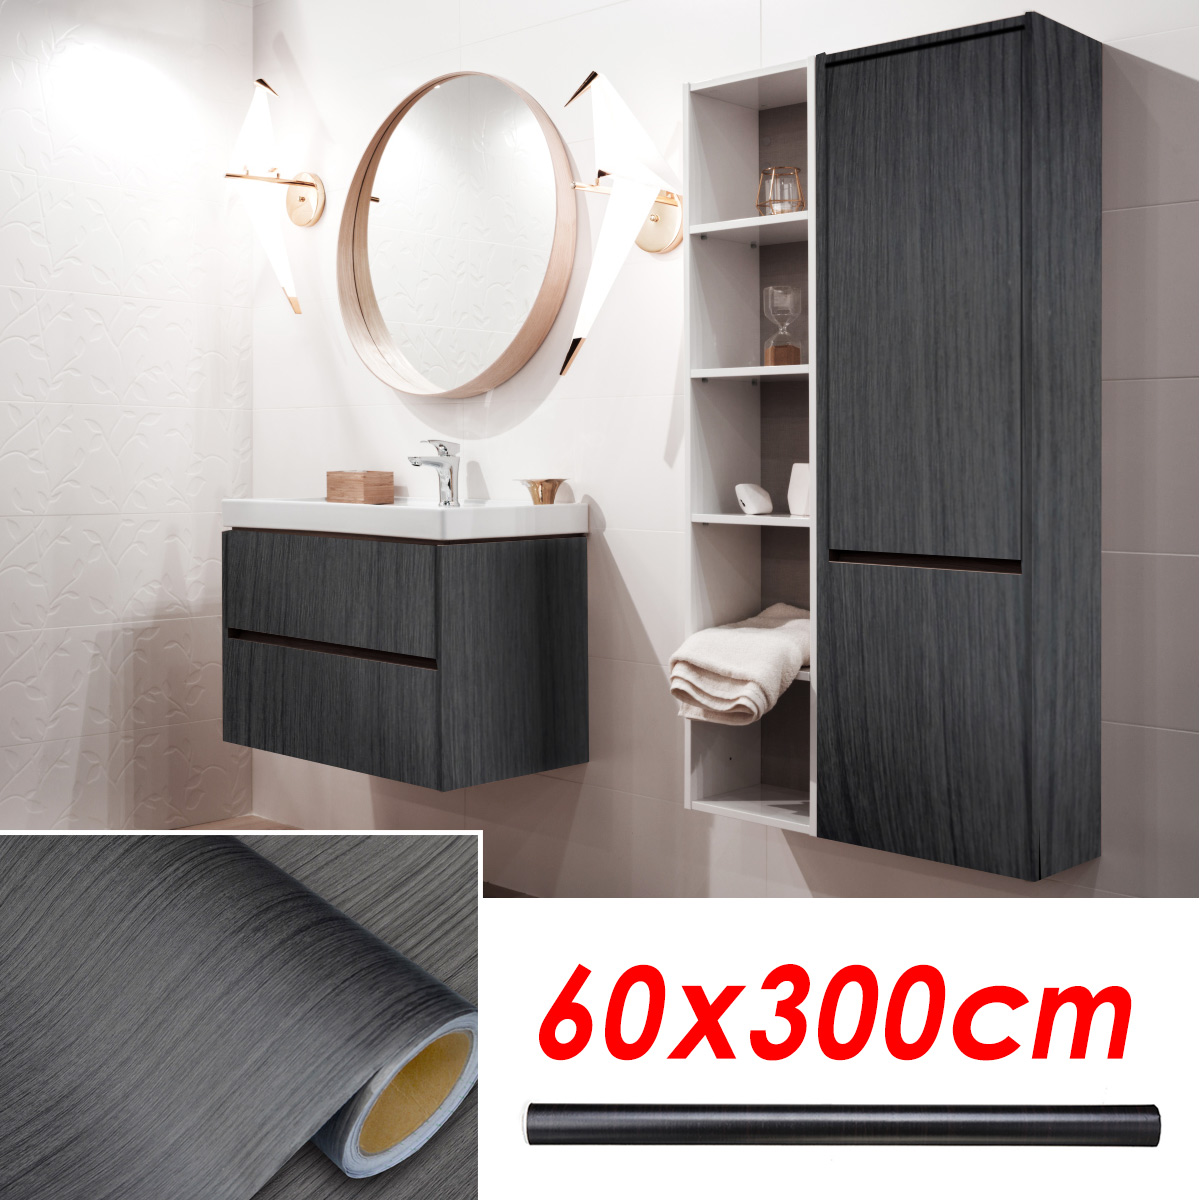 60*300cm Wood Grain Self Adhesive Contact Paper Wall Paper Furniture Sticker